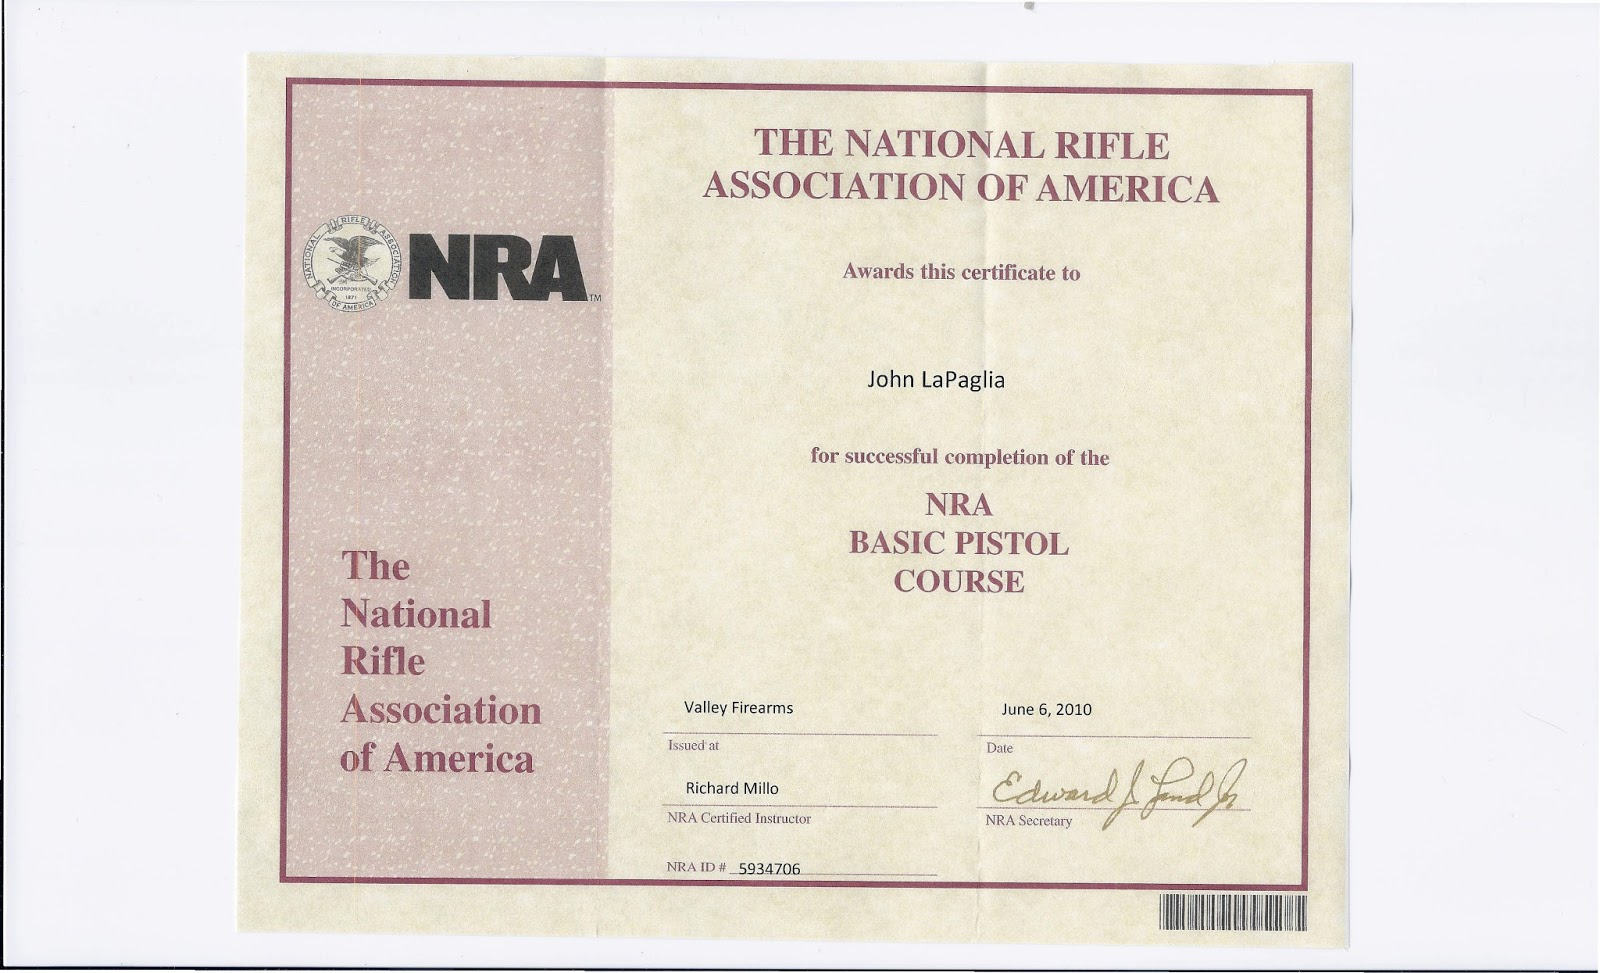 nra certificate template living like a jew in nazi germany or being excluded